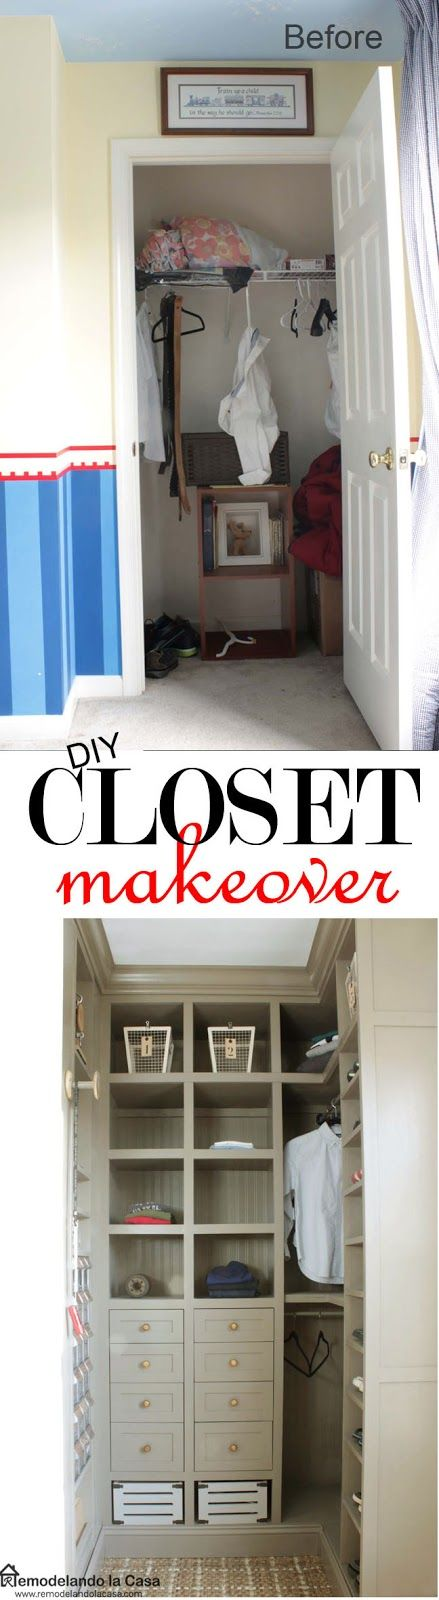 Diy small closet makeover the reveal in 2019 - Storage solutions for small closets ...